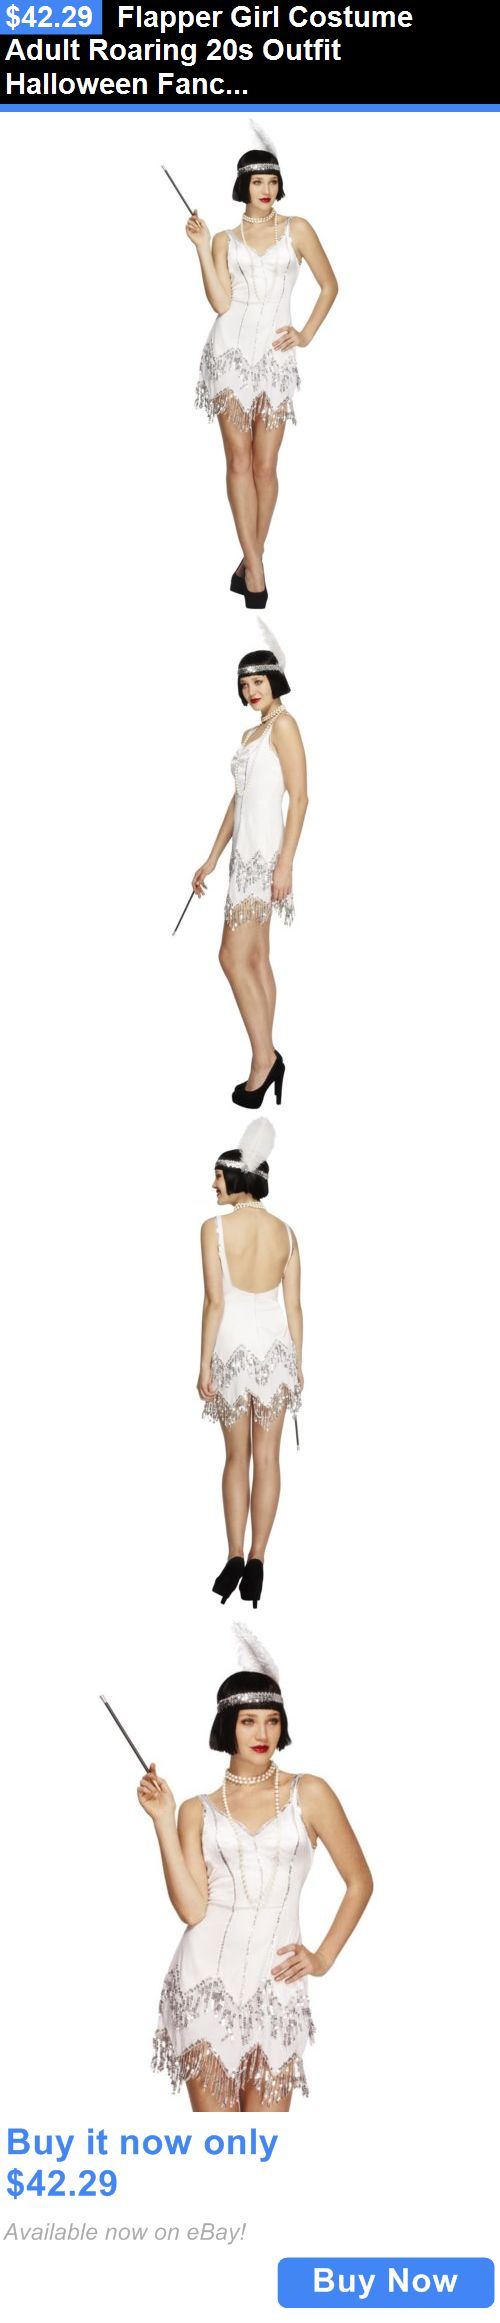 Halloween Costumes Women: Flapper Girl Costume Adult Roaring 20S Outfit Halloween Fancy Dress BUY IT NOW ONLY: $42.29